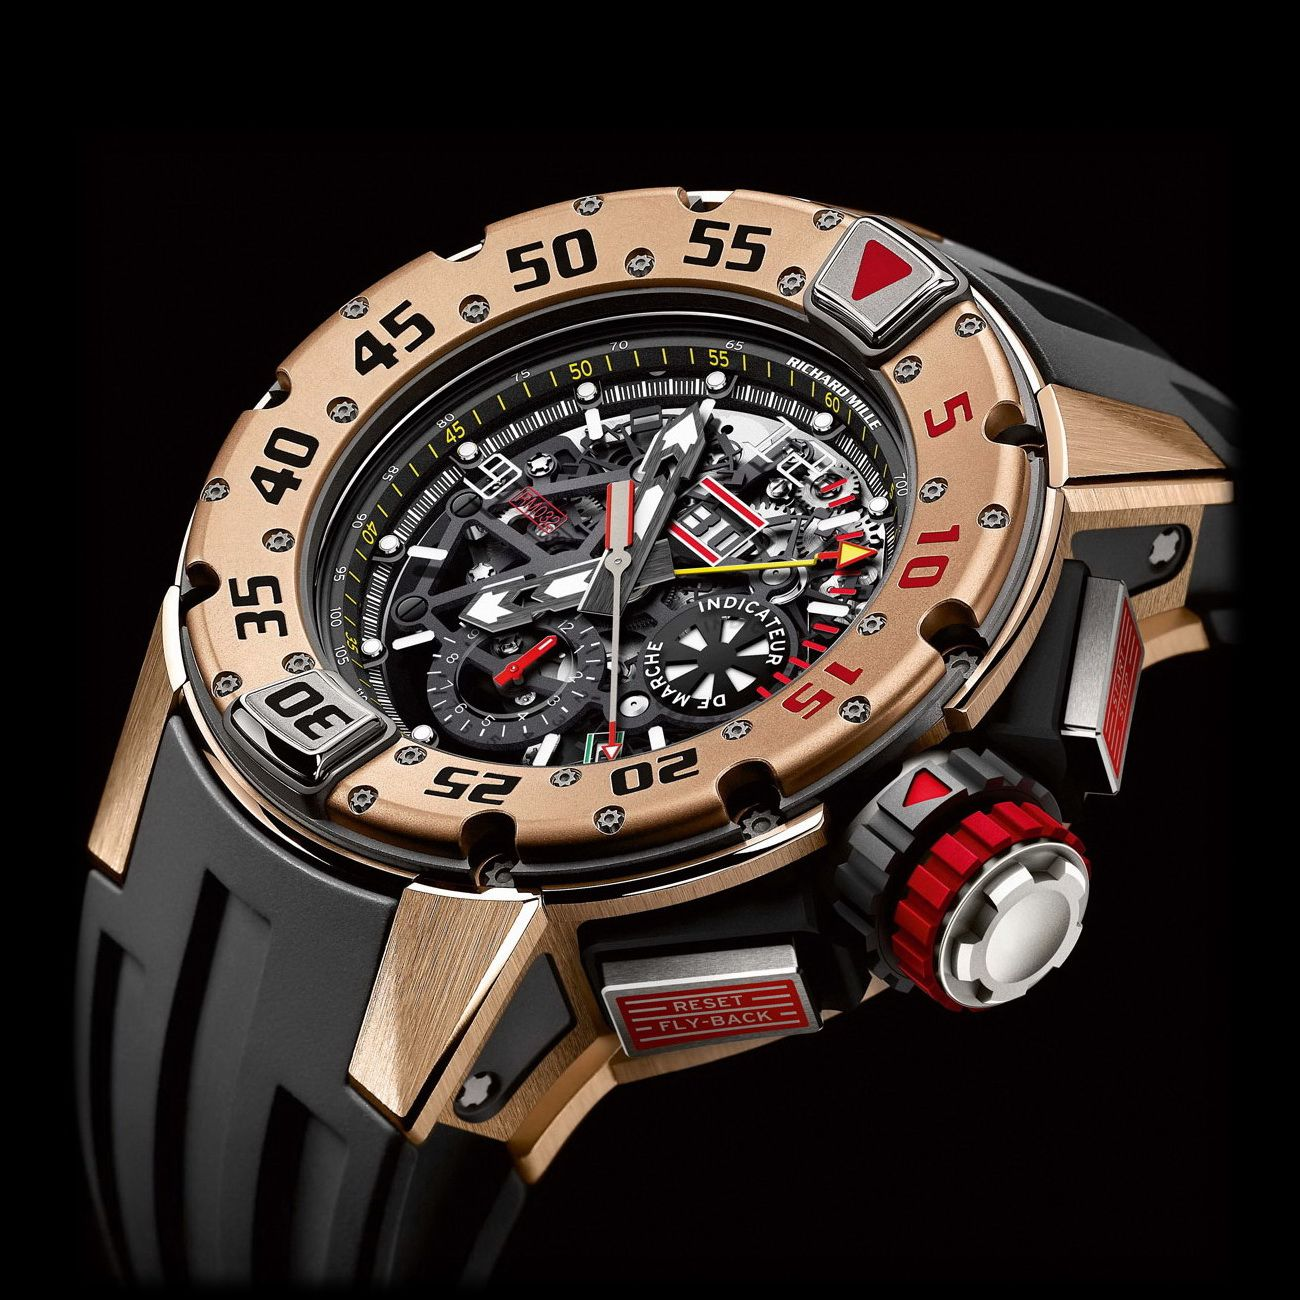 watches summit dollar watch android meets wear horolosphere hi smart when montblanc tech high